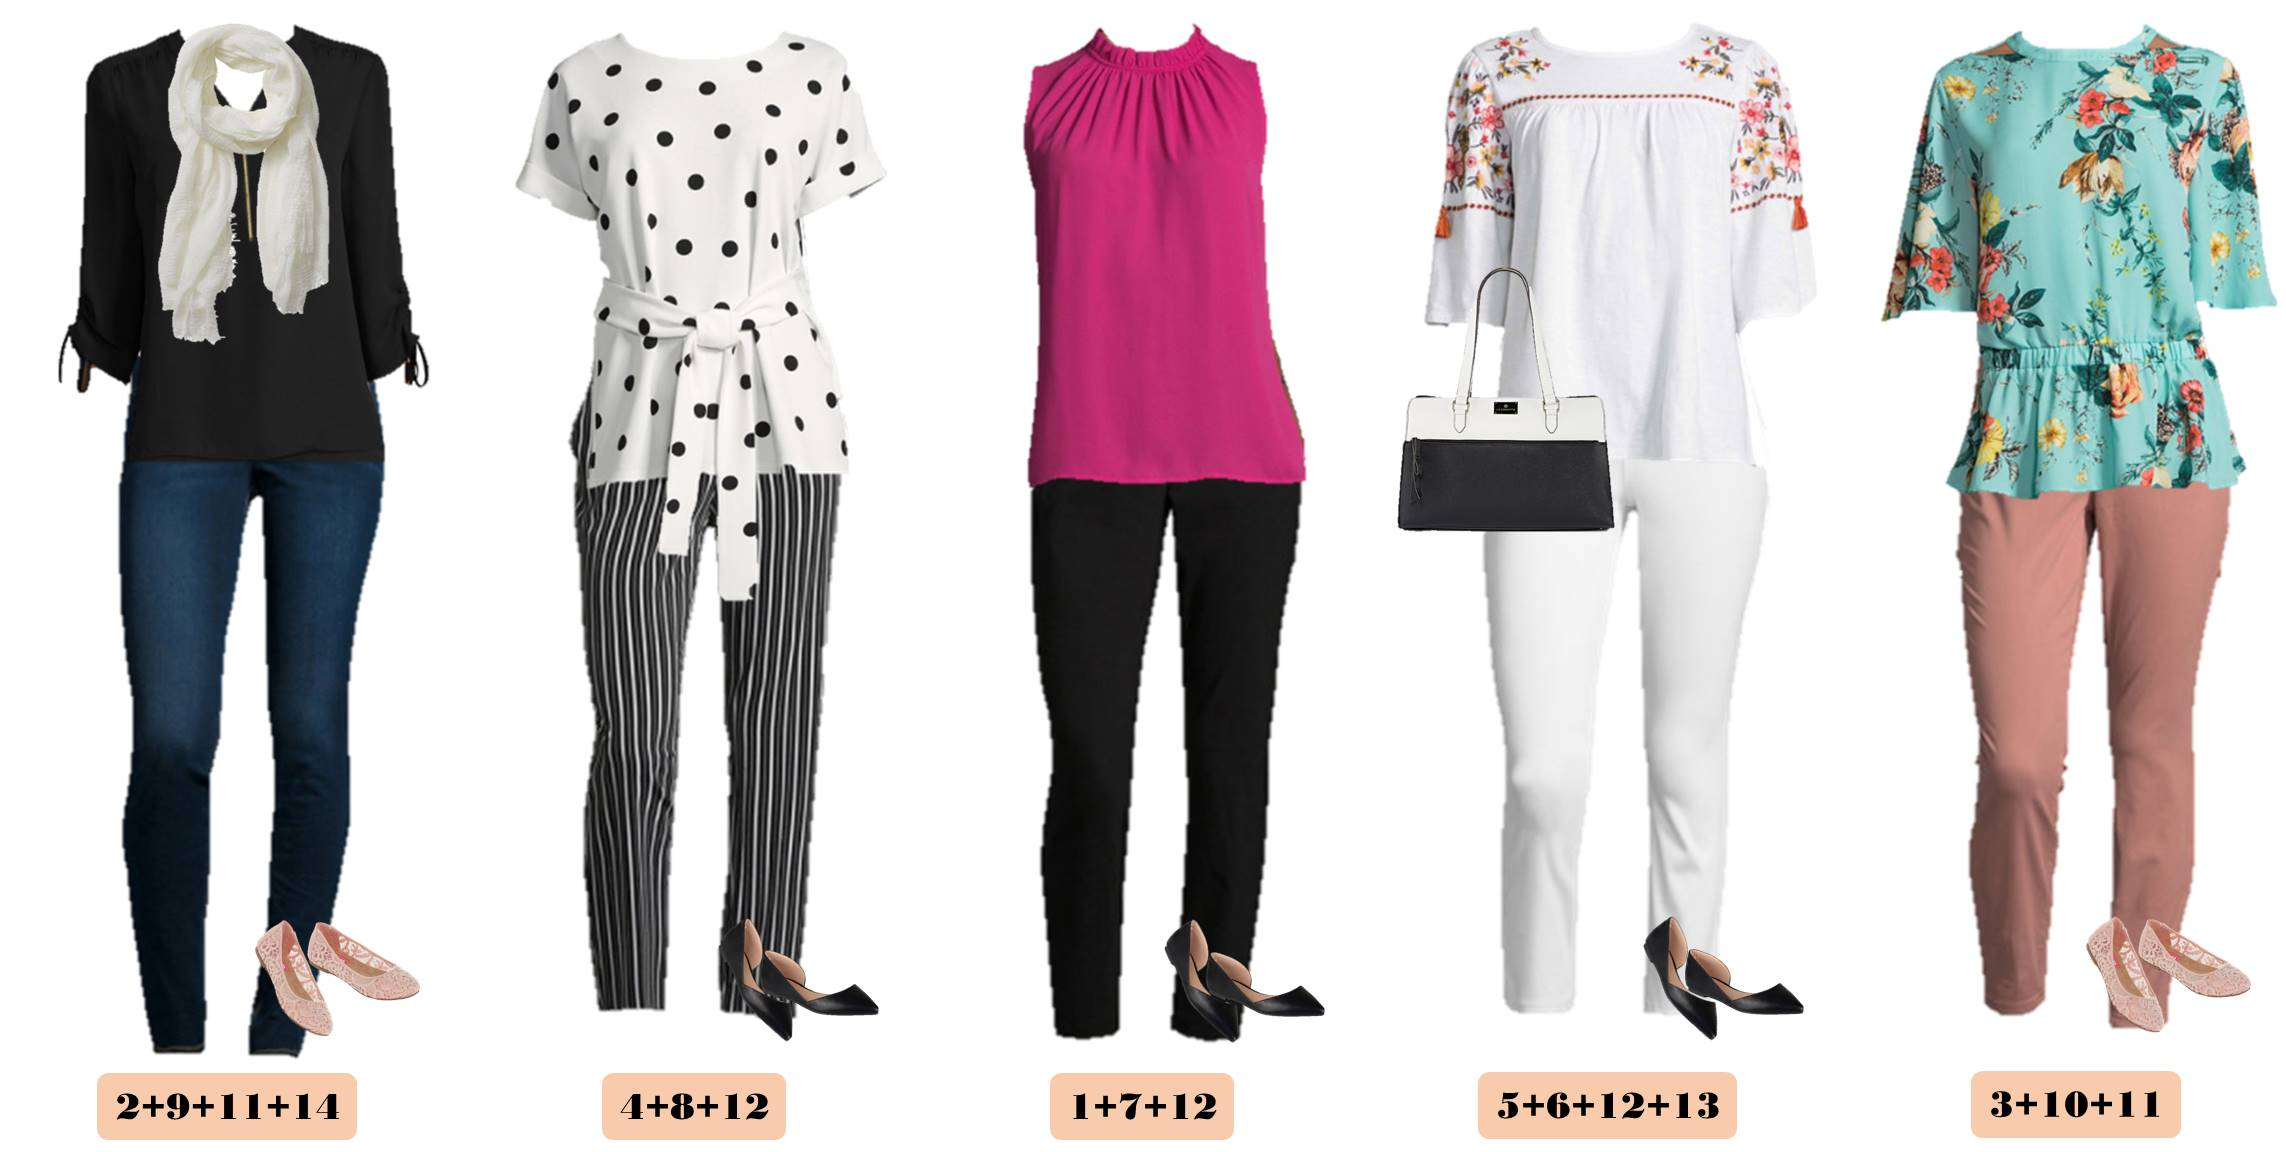 JCPenney spring outfits that mix and match - floral top and polk dots